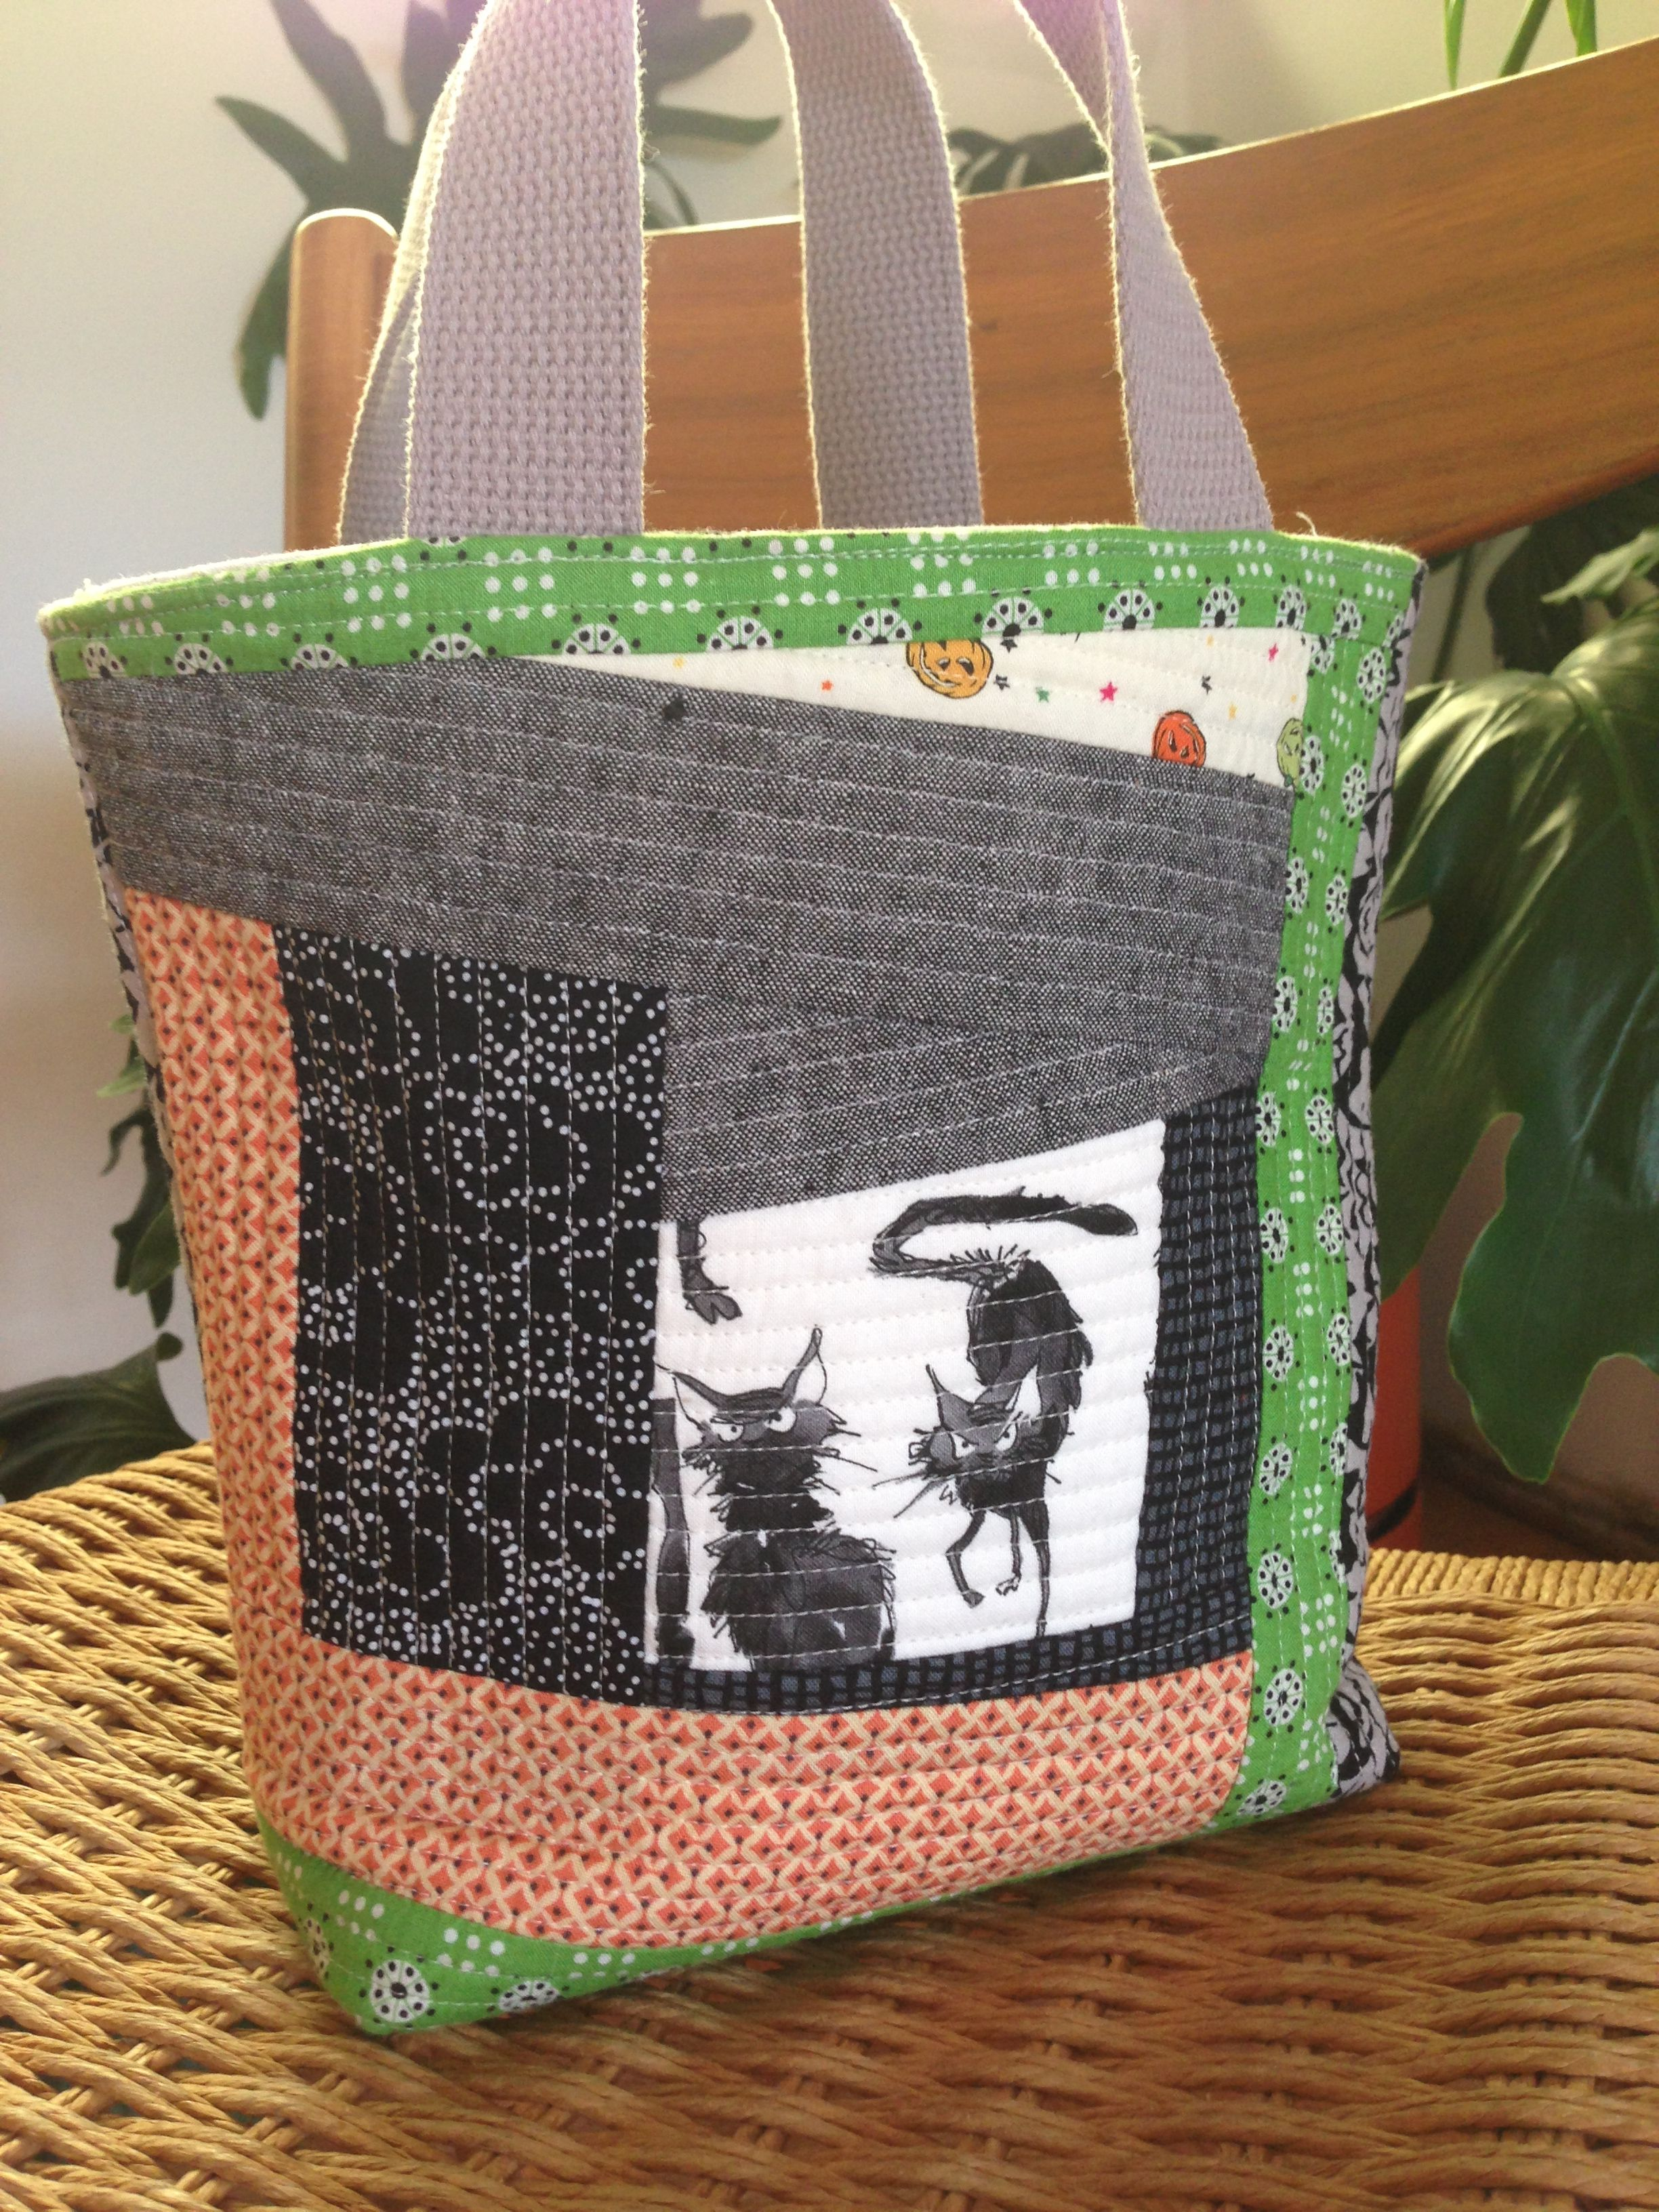 sewkatiedid/quilt as you go trick or treat bag